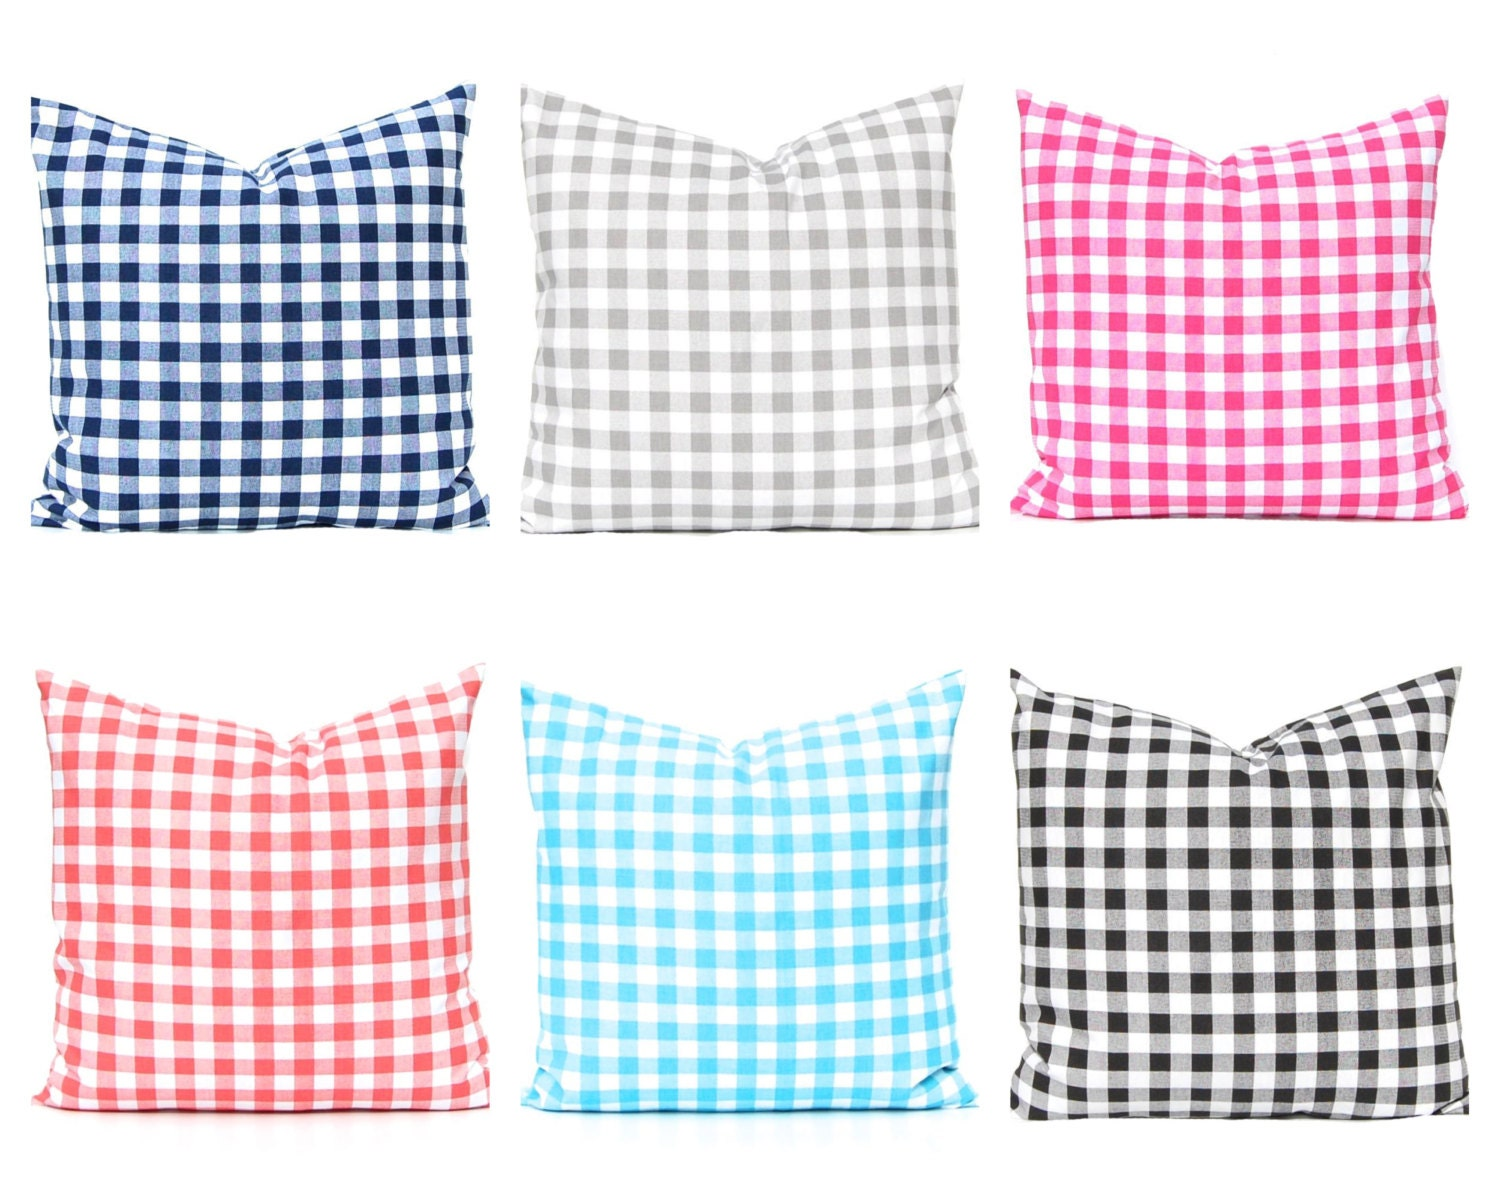 Decorative Plaid Pillows : Decorative Pillow Covers Plaid PIllow Covers Plaid Cushion